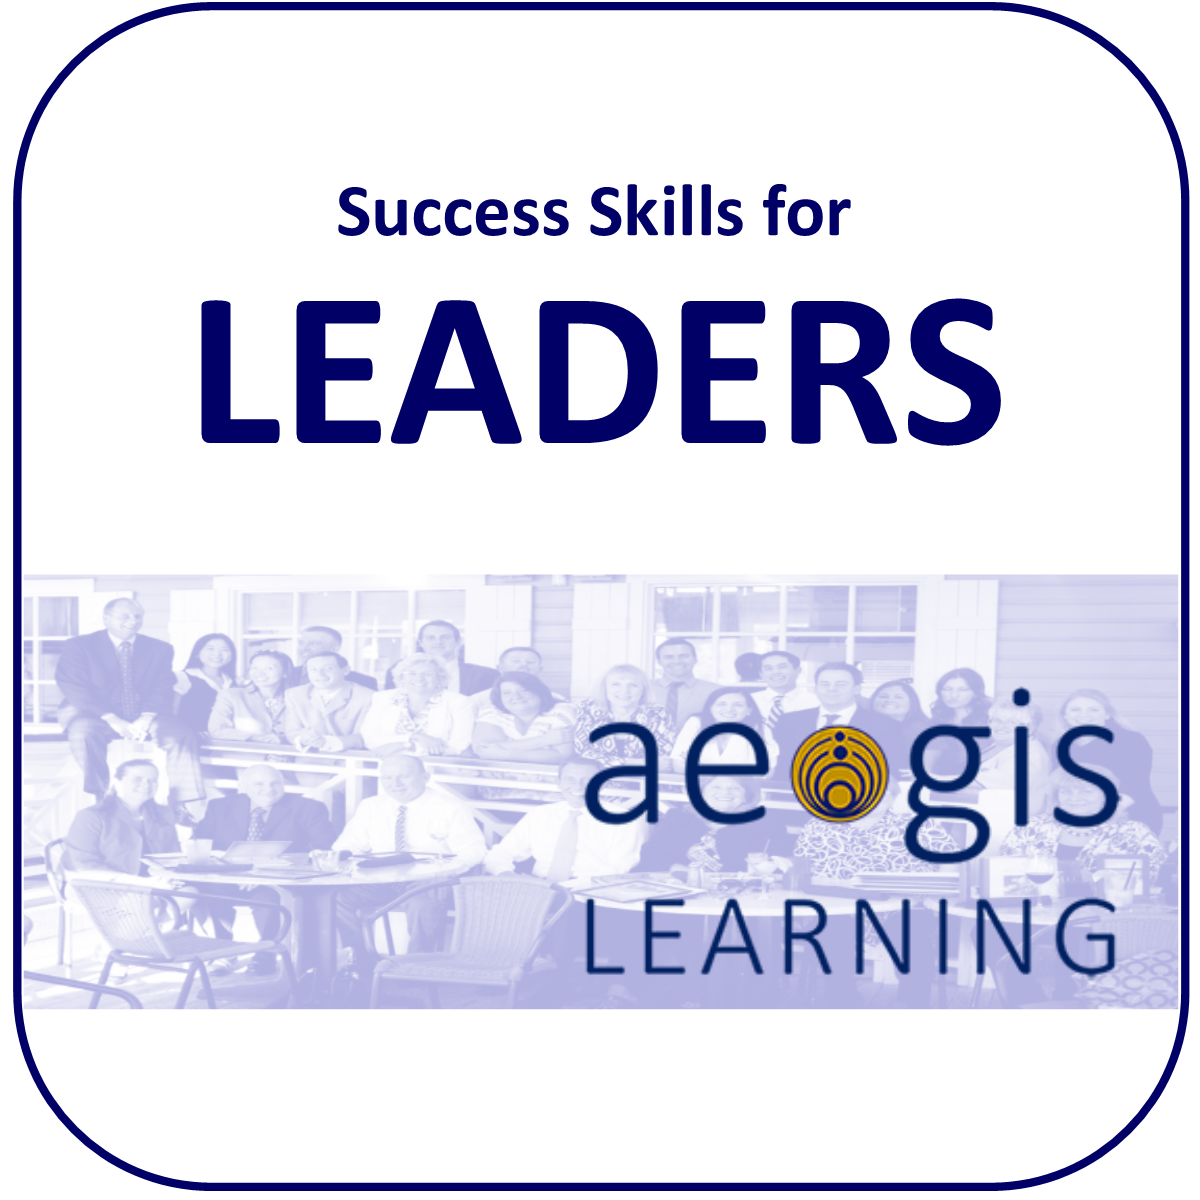 Success Skills for Leaders from Aegis Learning